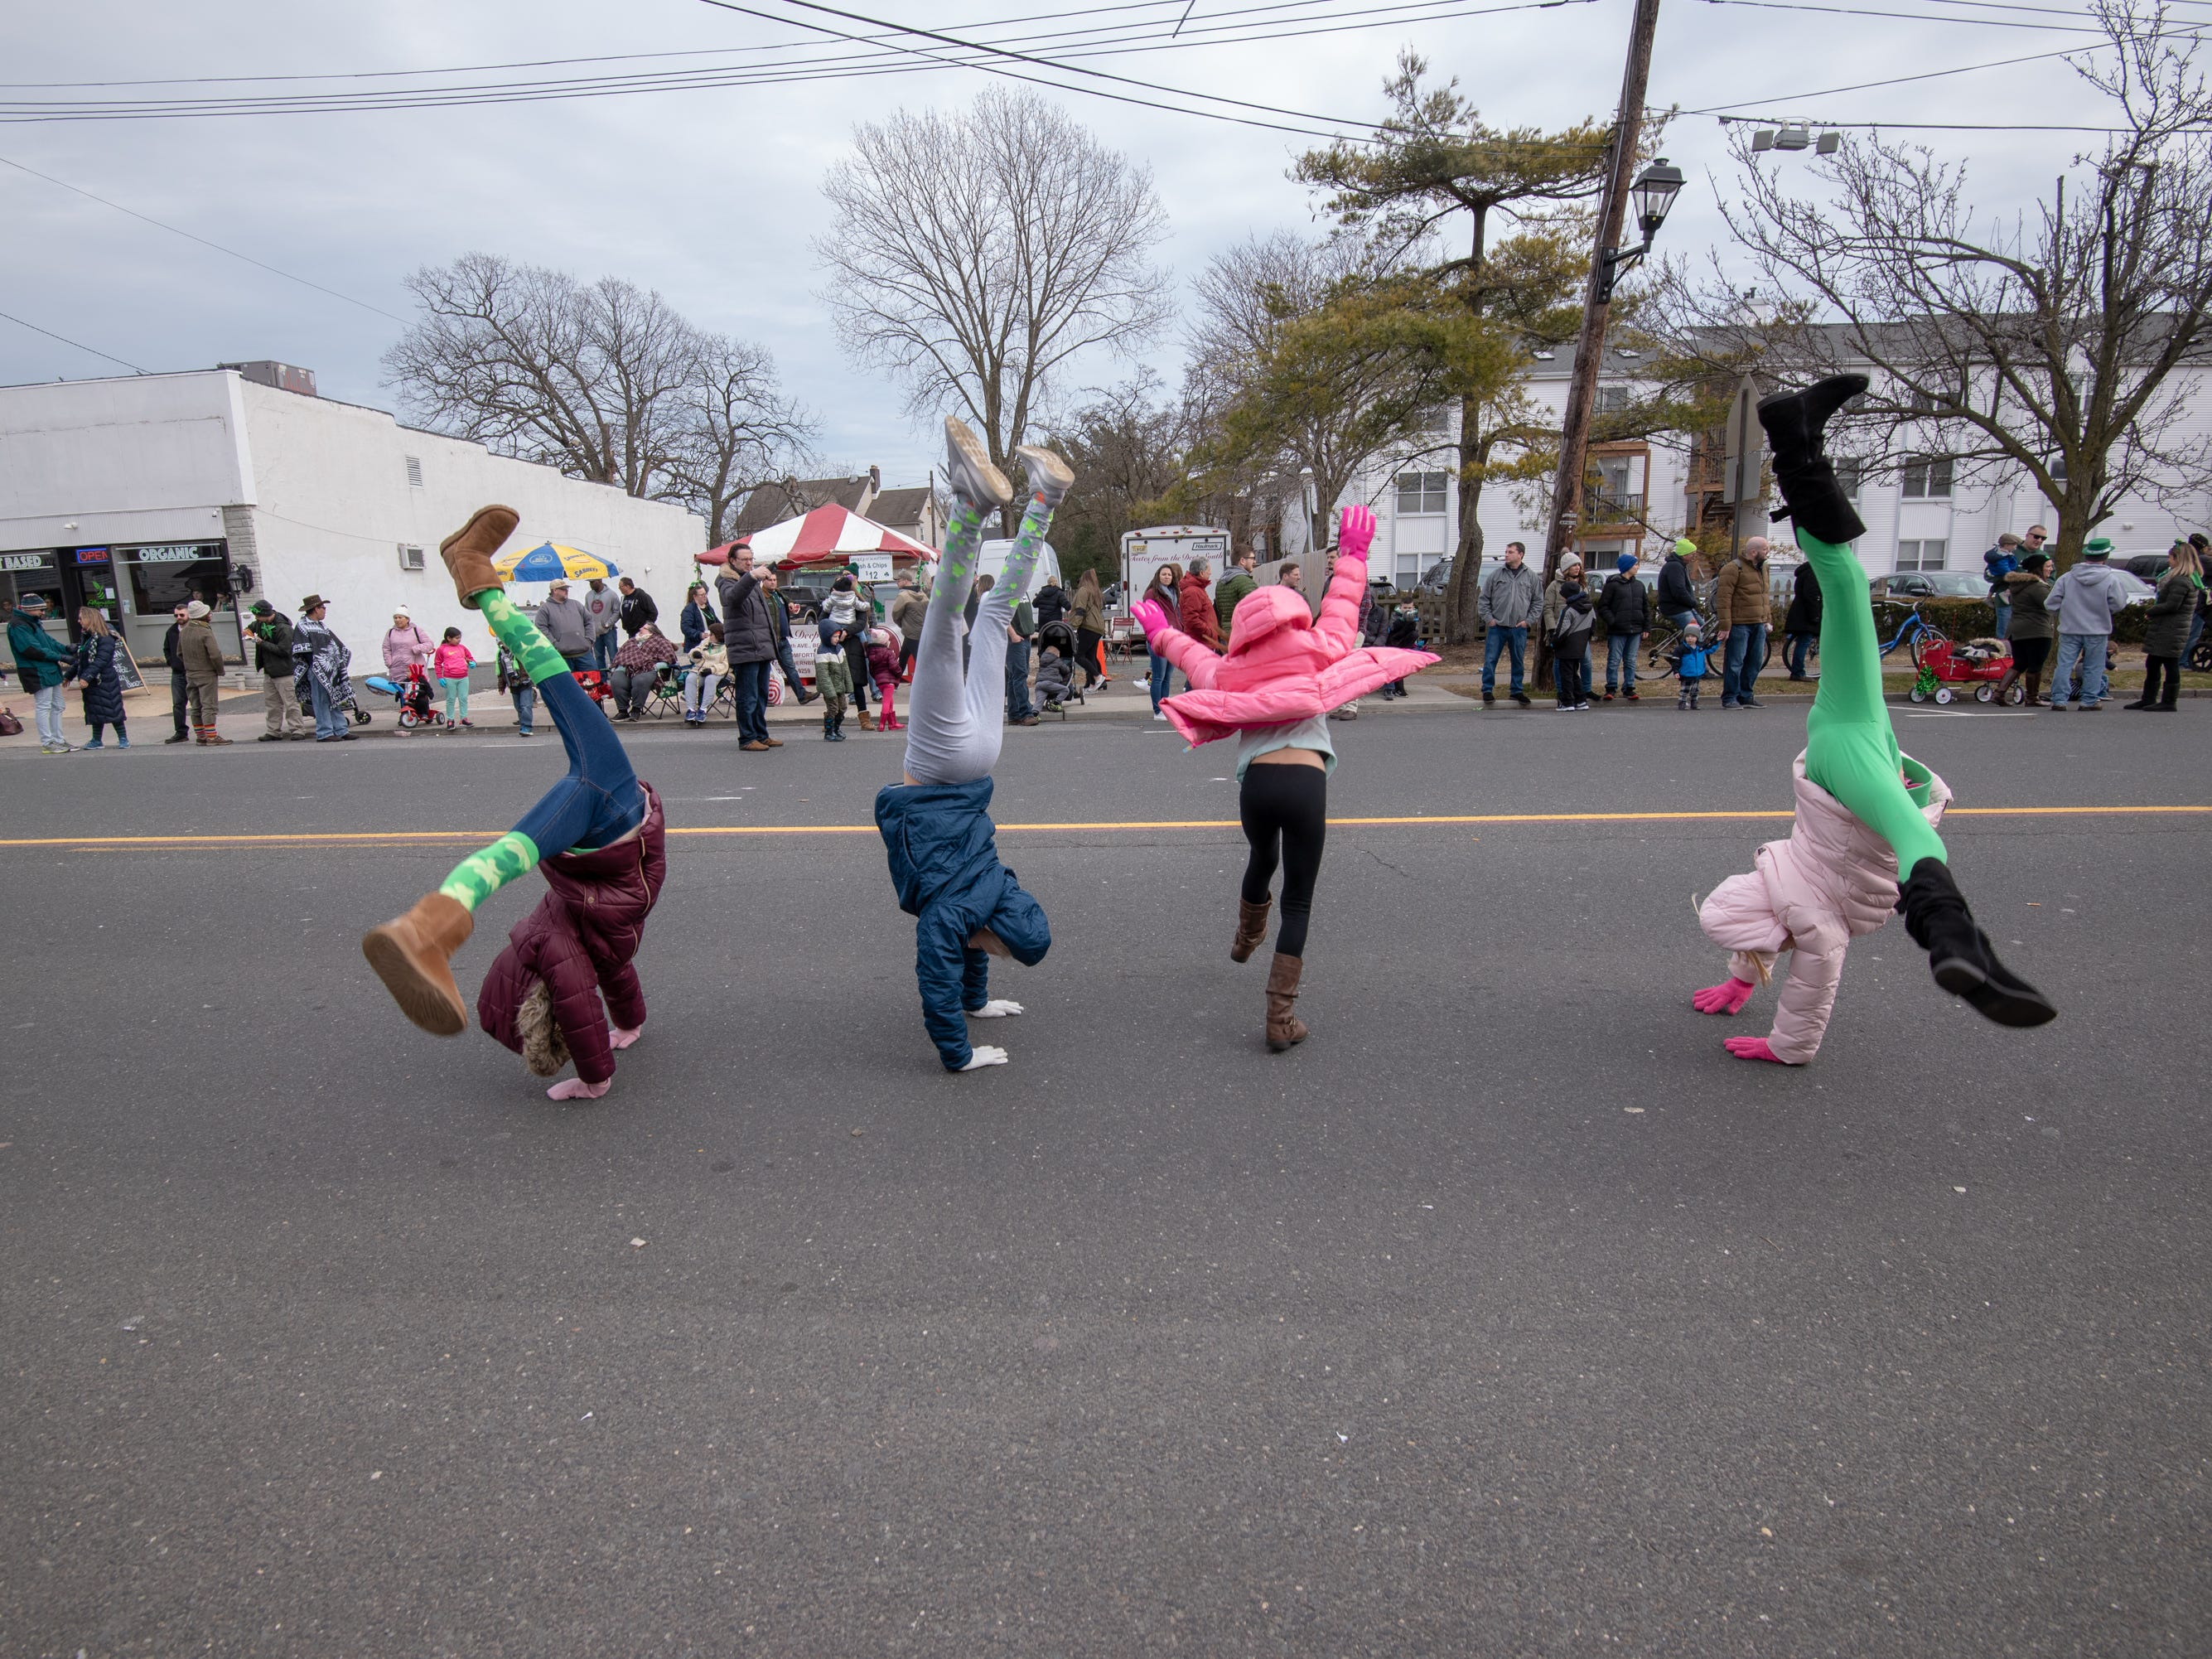 Four friends from Jackson Twp., do cartwheels. The annual St Patrick's Day Parade was held in Belmar, NJ, today, Sunday, March 3, 2019. / Russ DeSantis for the Asbury Park Press